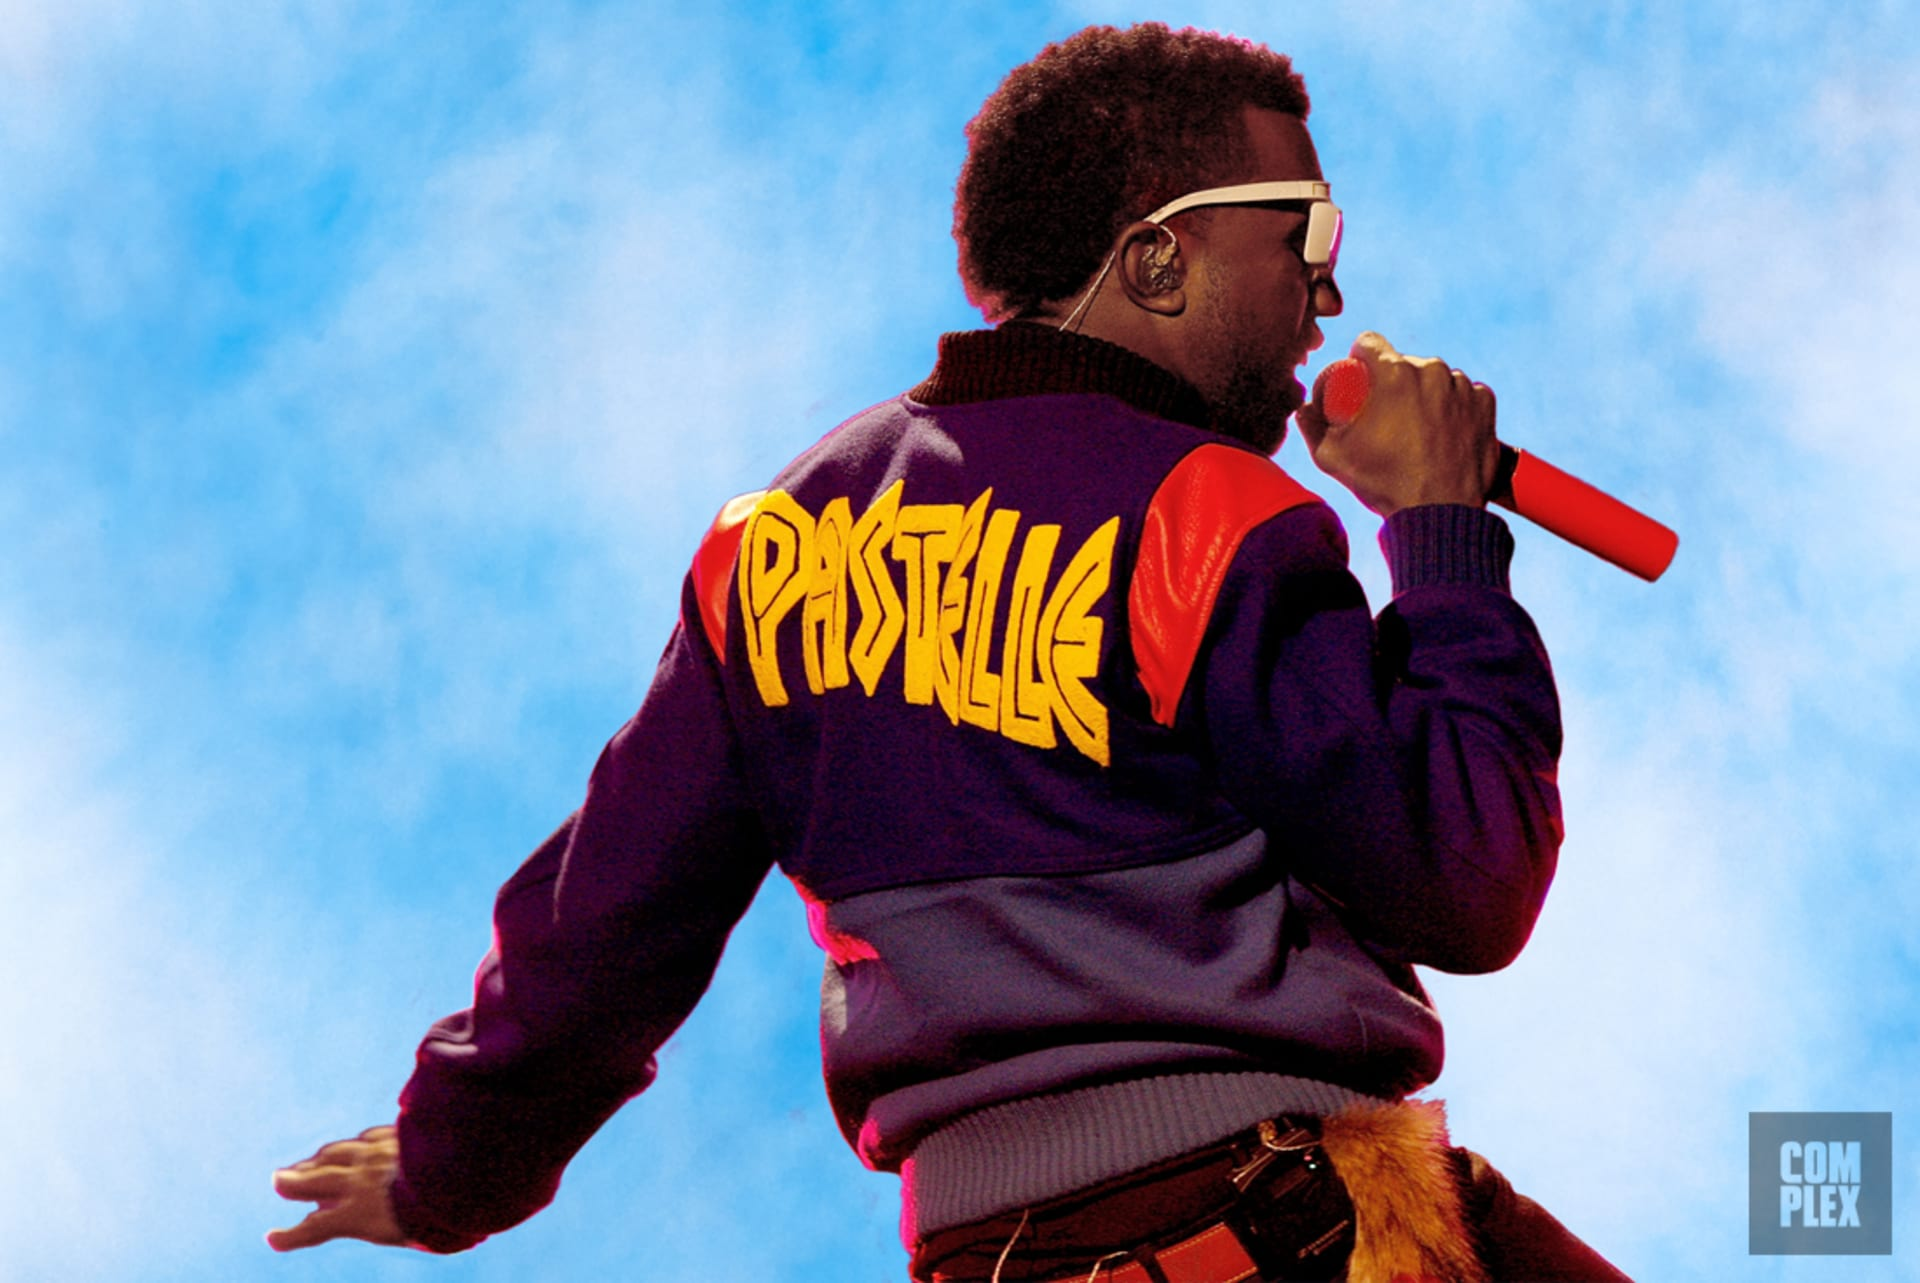 56129d5919dba Kanye West wearing Pastelle varsity jacket